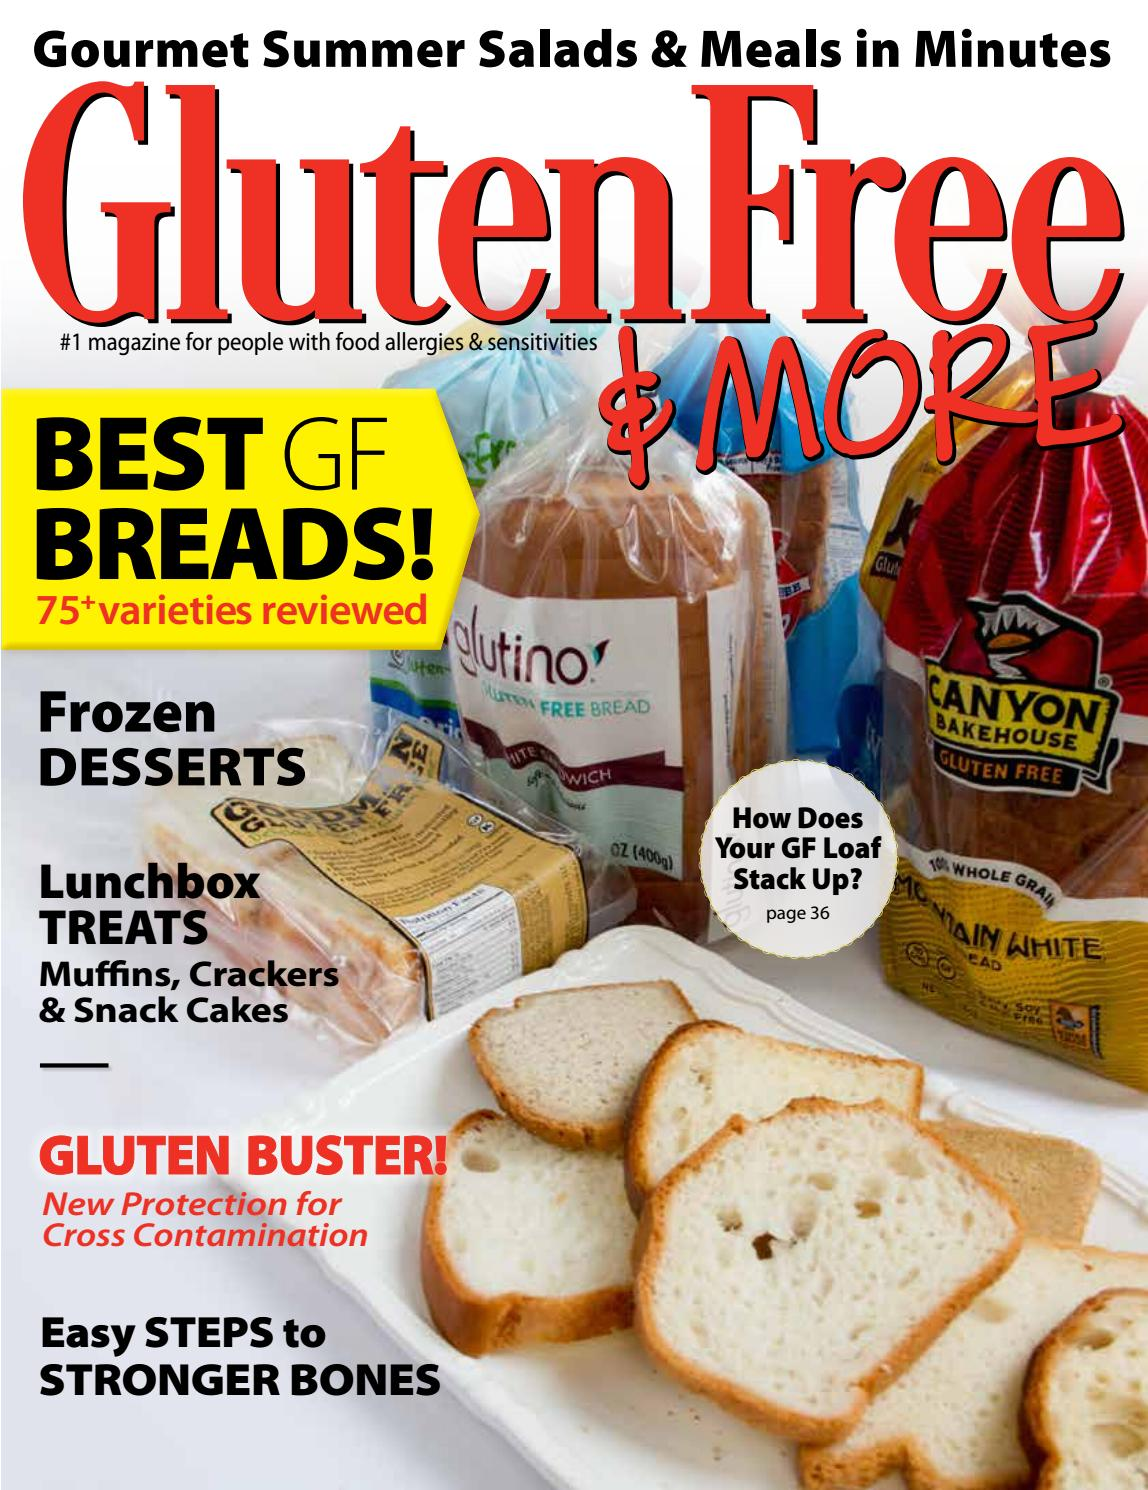 Forum on this topic: Gluten-Free Finally Means Something with New FDA , gluten-free-finally-means-something-with-new-fda/